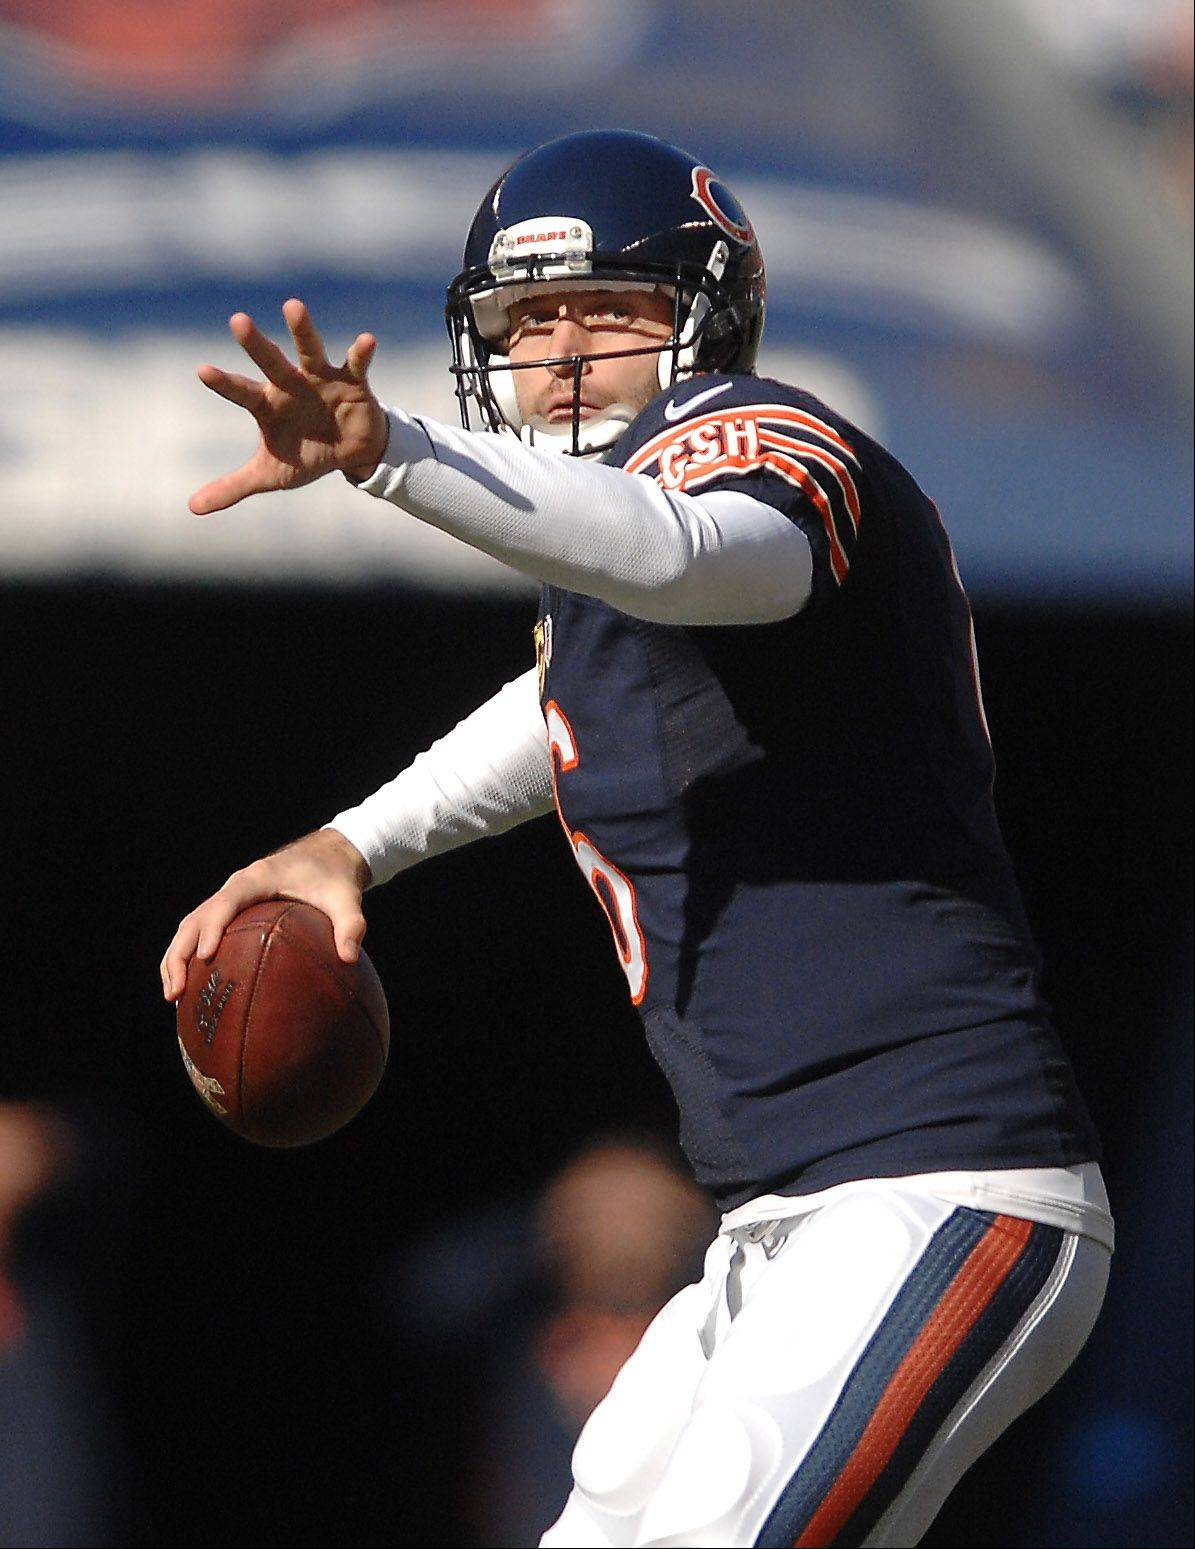 Sunday night�s prime-time matchup at Philadelphia will give Bears quarterback Jay Cutler to show he can rise above �the noise� that often surrounds the team.